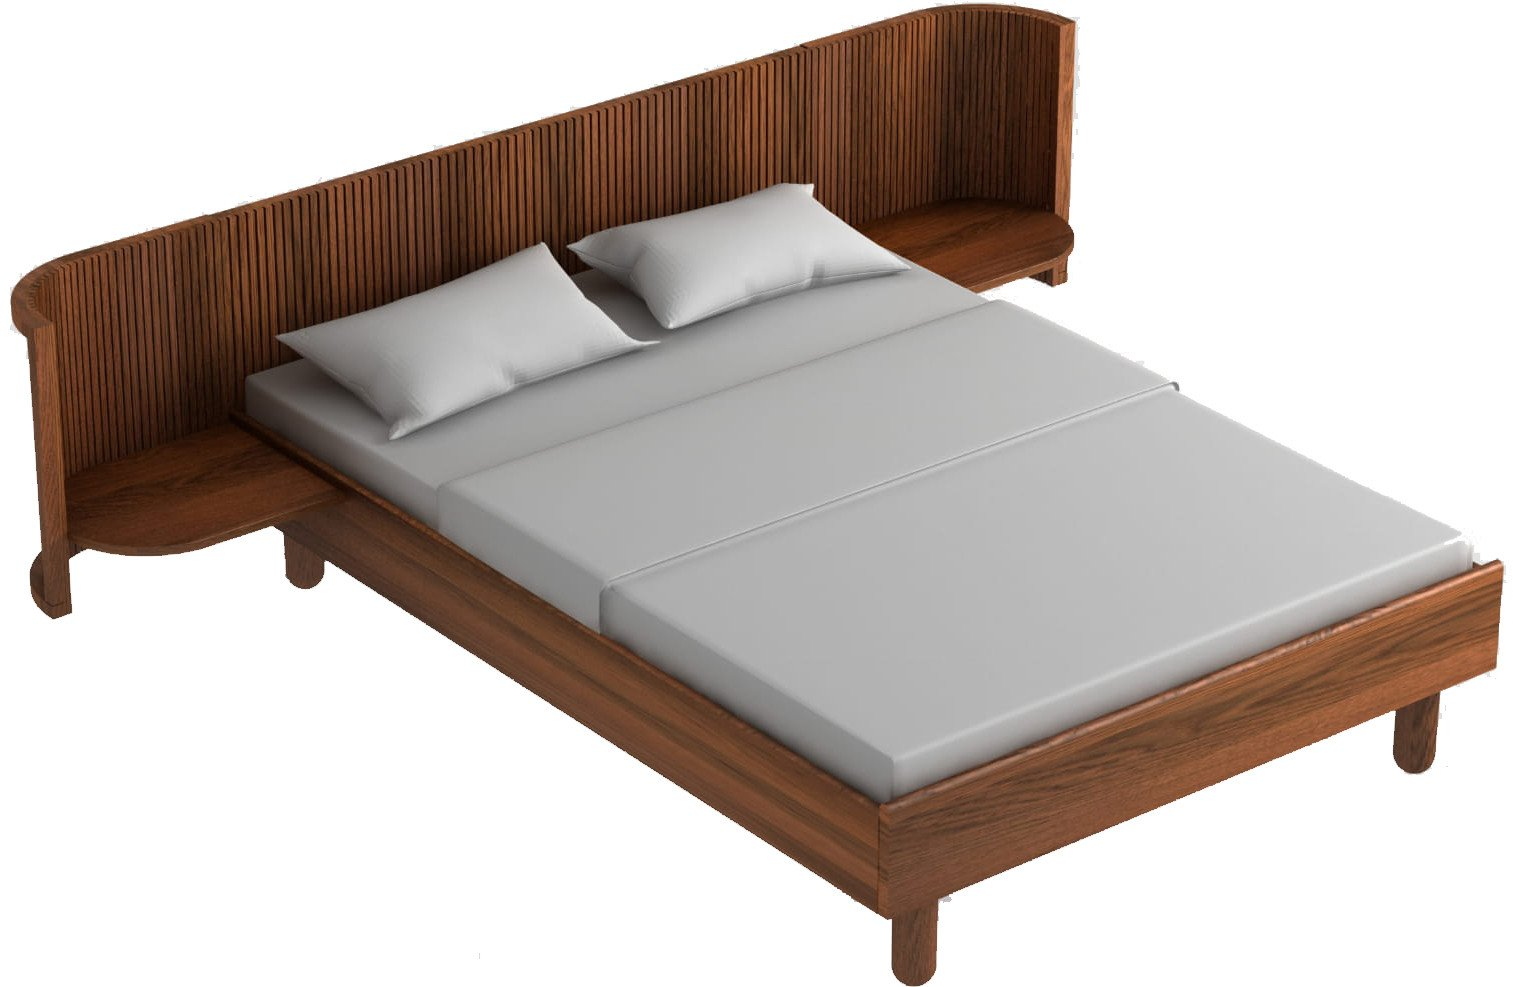 Hug Bed Dark Oak Oil Wax 140cm, Tamo